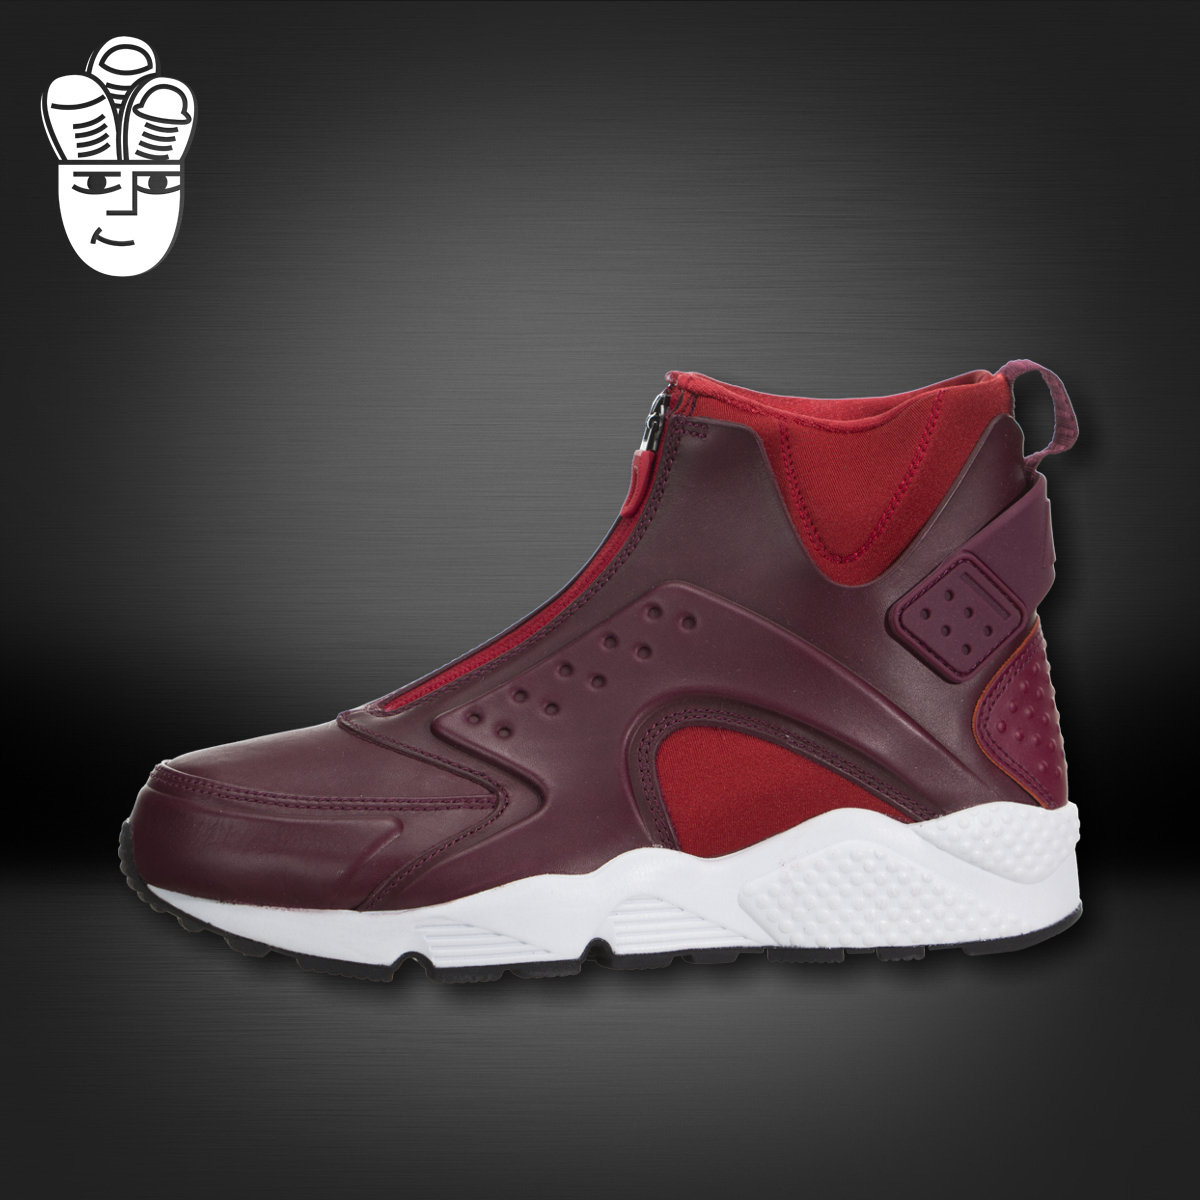 huge discount 3bcfa 0572d Get Quotations · Nike air huarache run mid prm wallace running shoes nike  womens running shoes to help